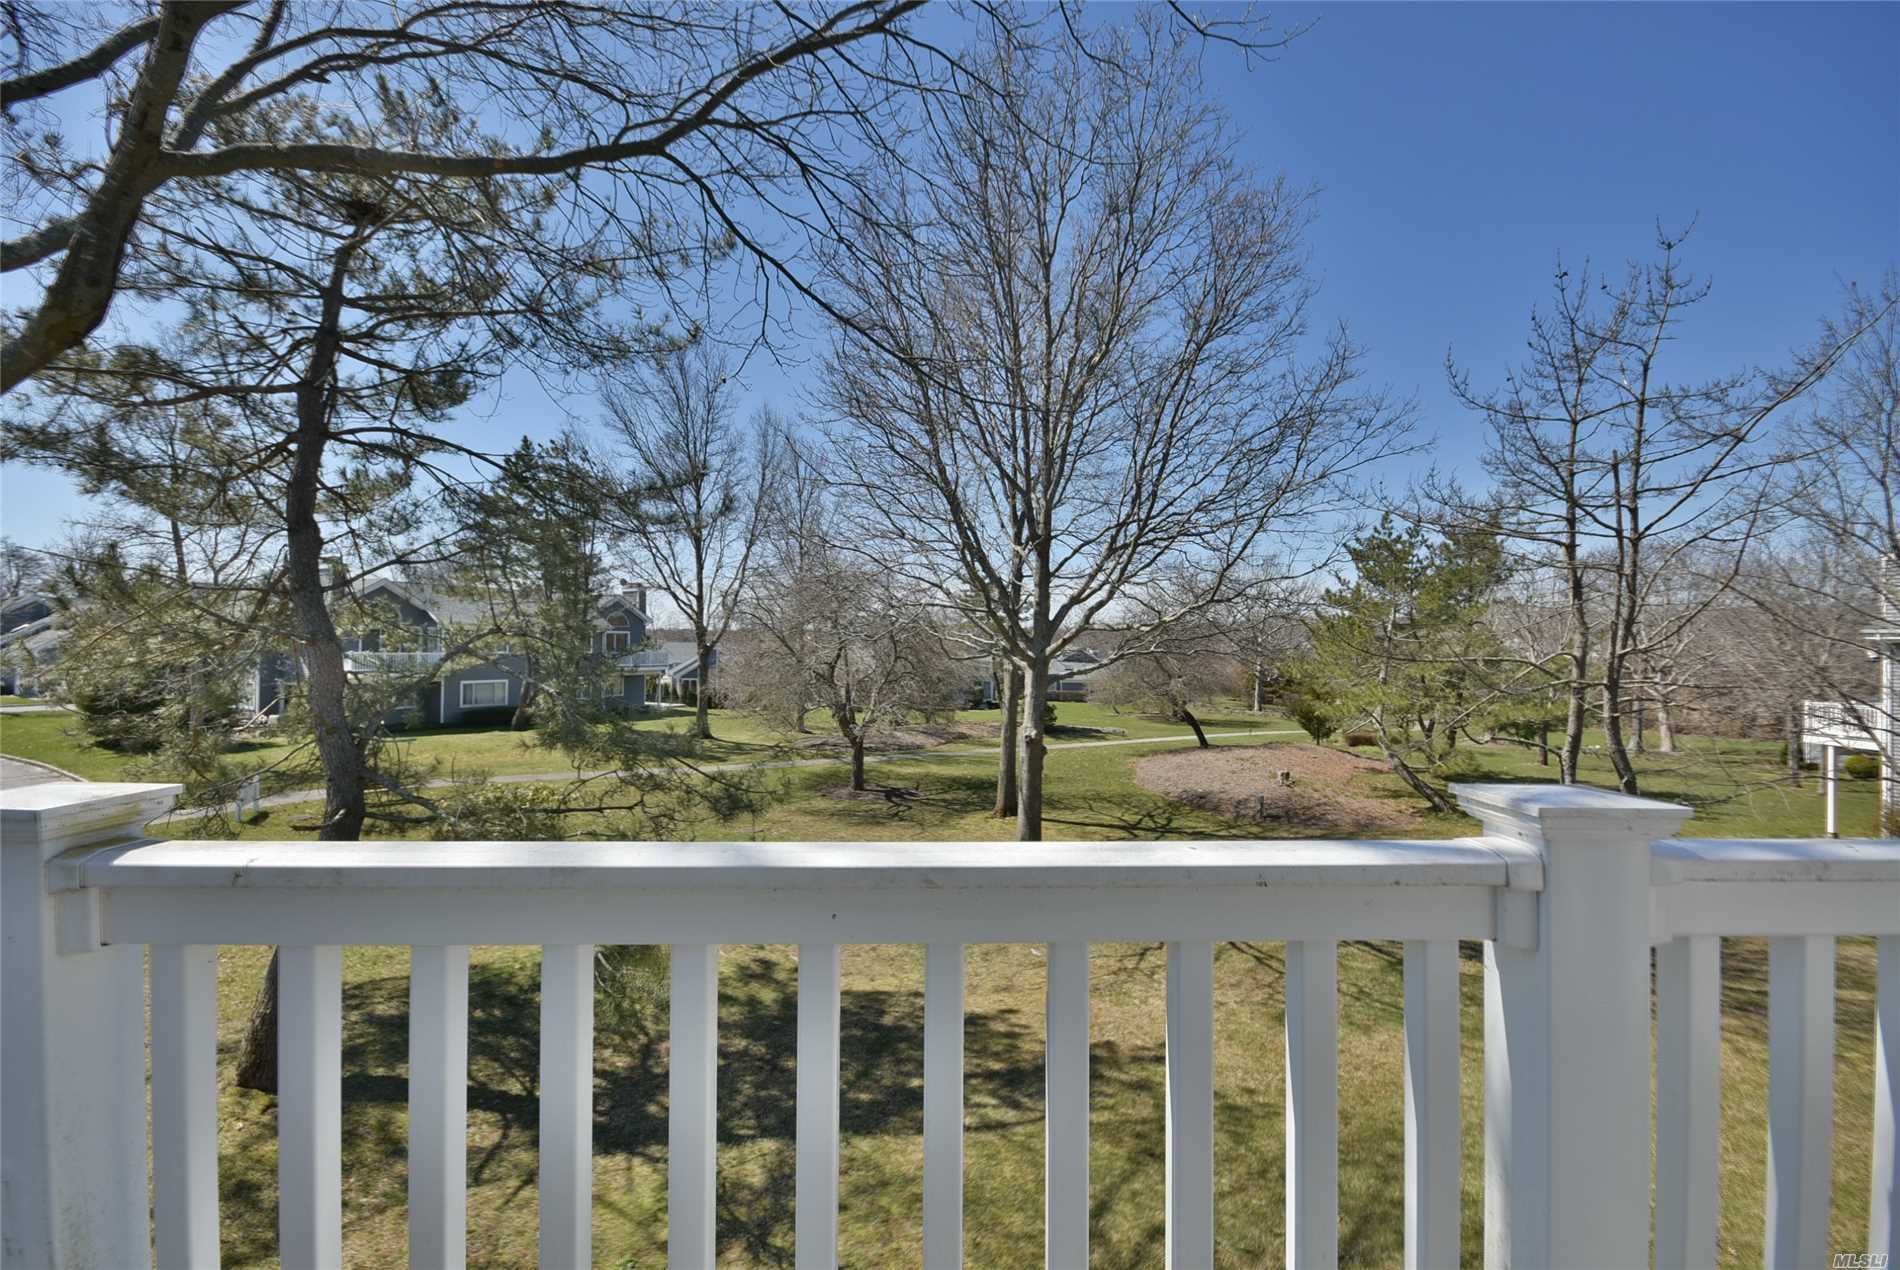 Sale May Be Subject To Term & Conditions Of An Offering Plan. Spacious Driftwood Model In The Waterways Including 3 Bedrooms, L/R D/R Combo, Kitchen, Deck ; Clubhouse Amenities In 55+ Gated Community